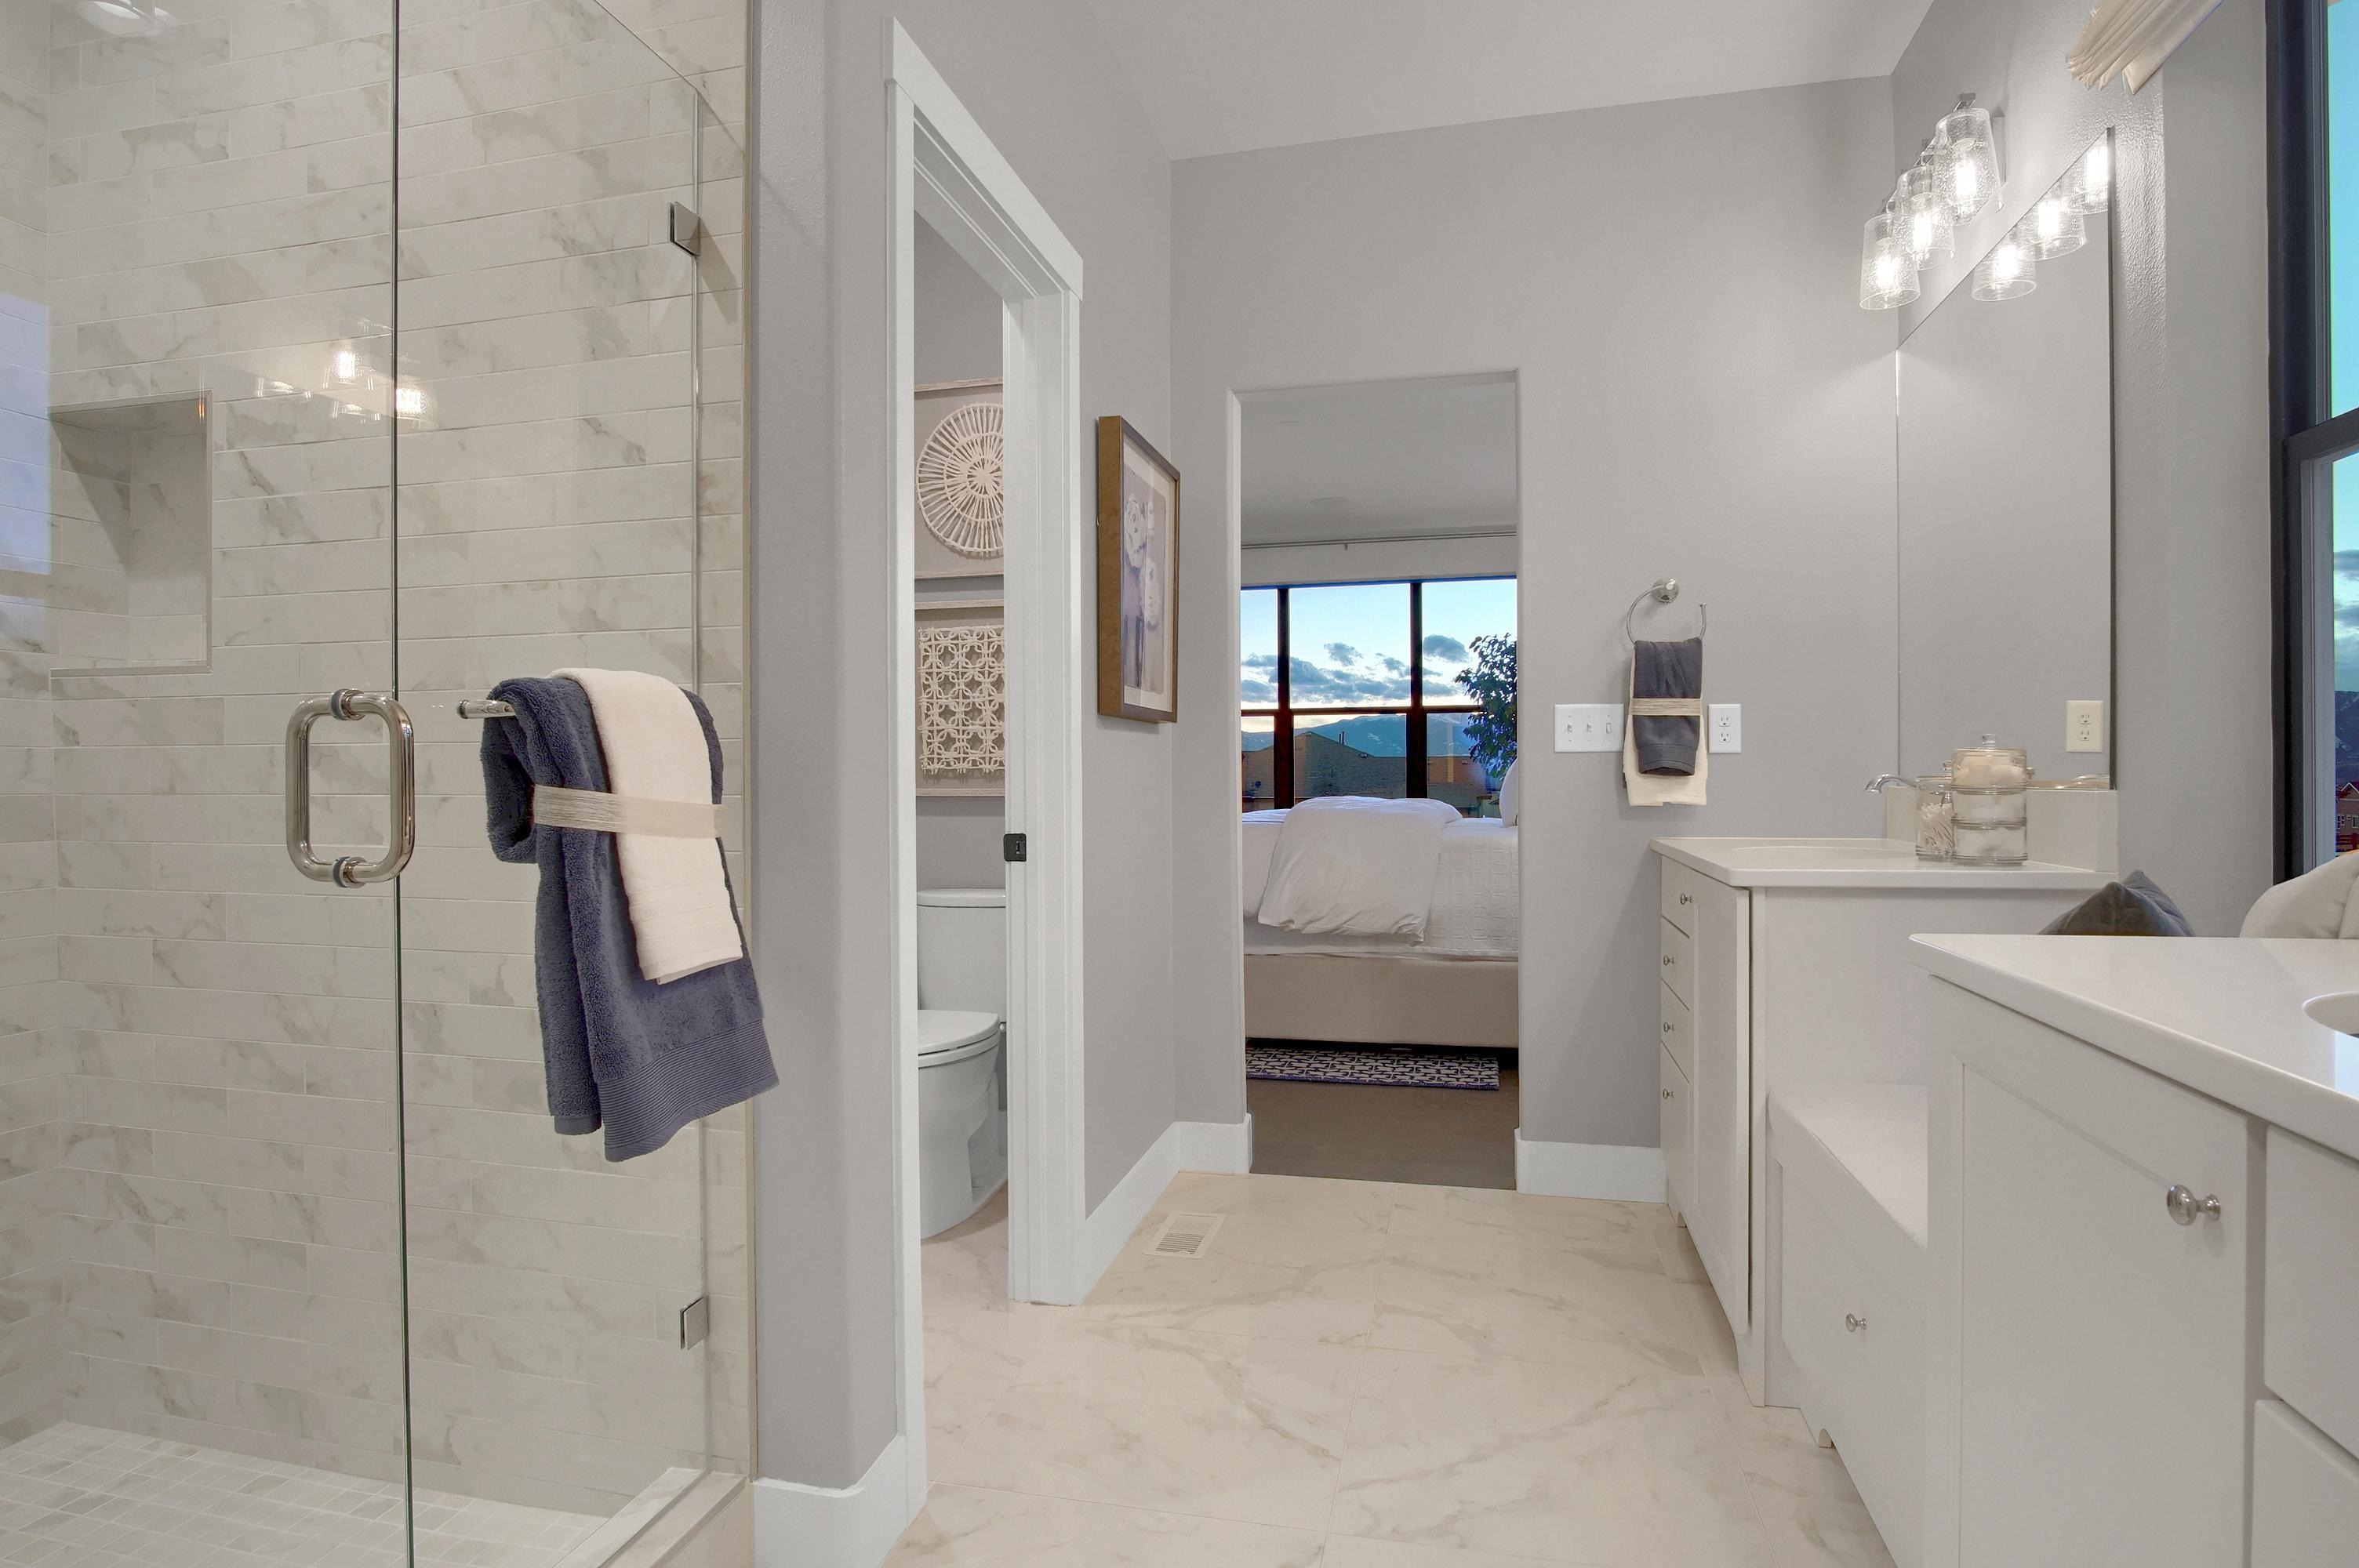 Bathroom featured in the Mackintosh By Keller Homes, A Toll Bros. Co. in Colorado Springs, CO